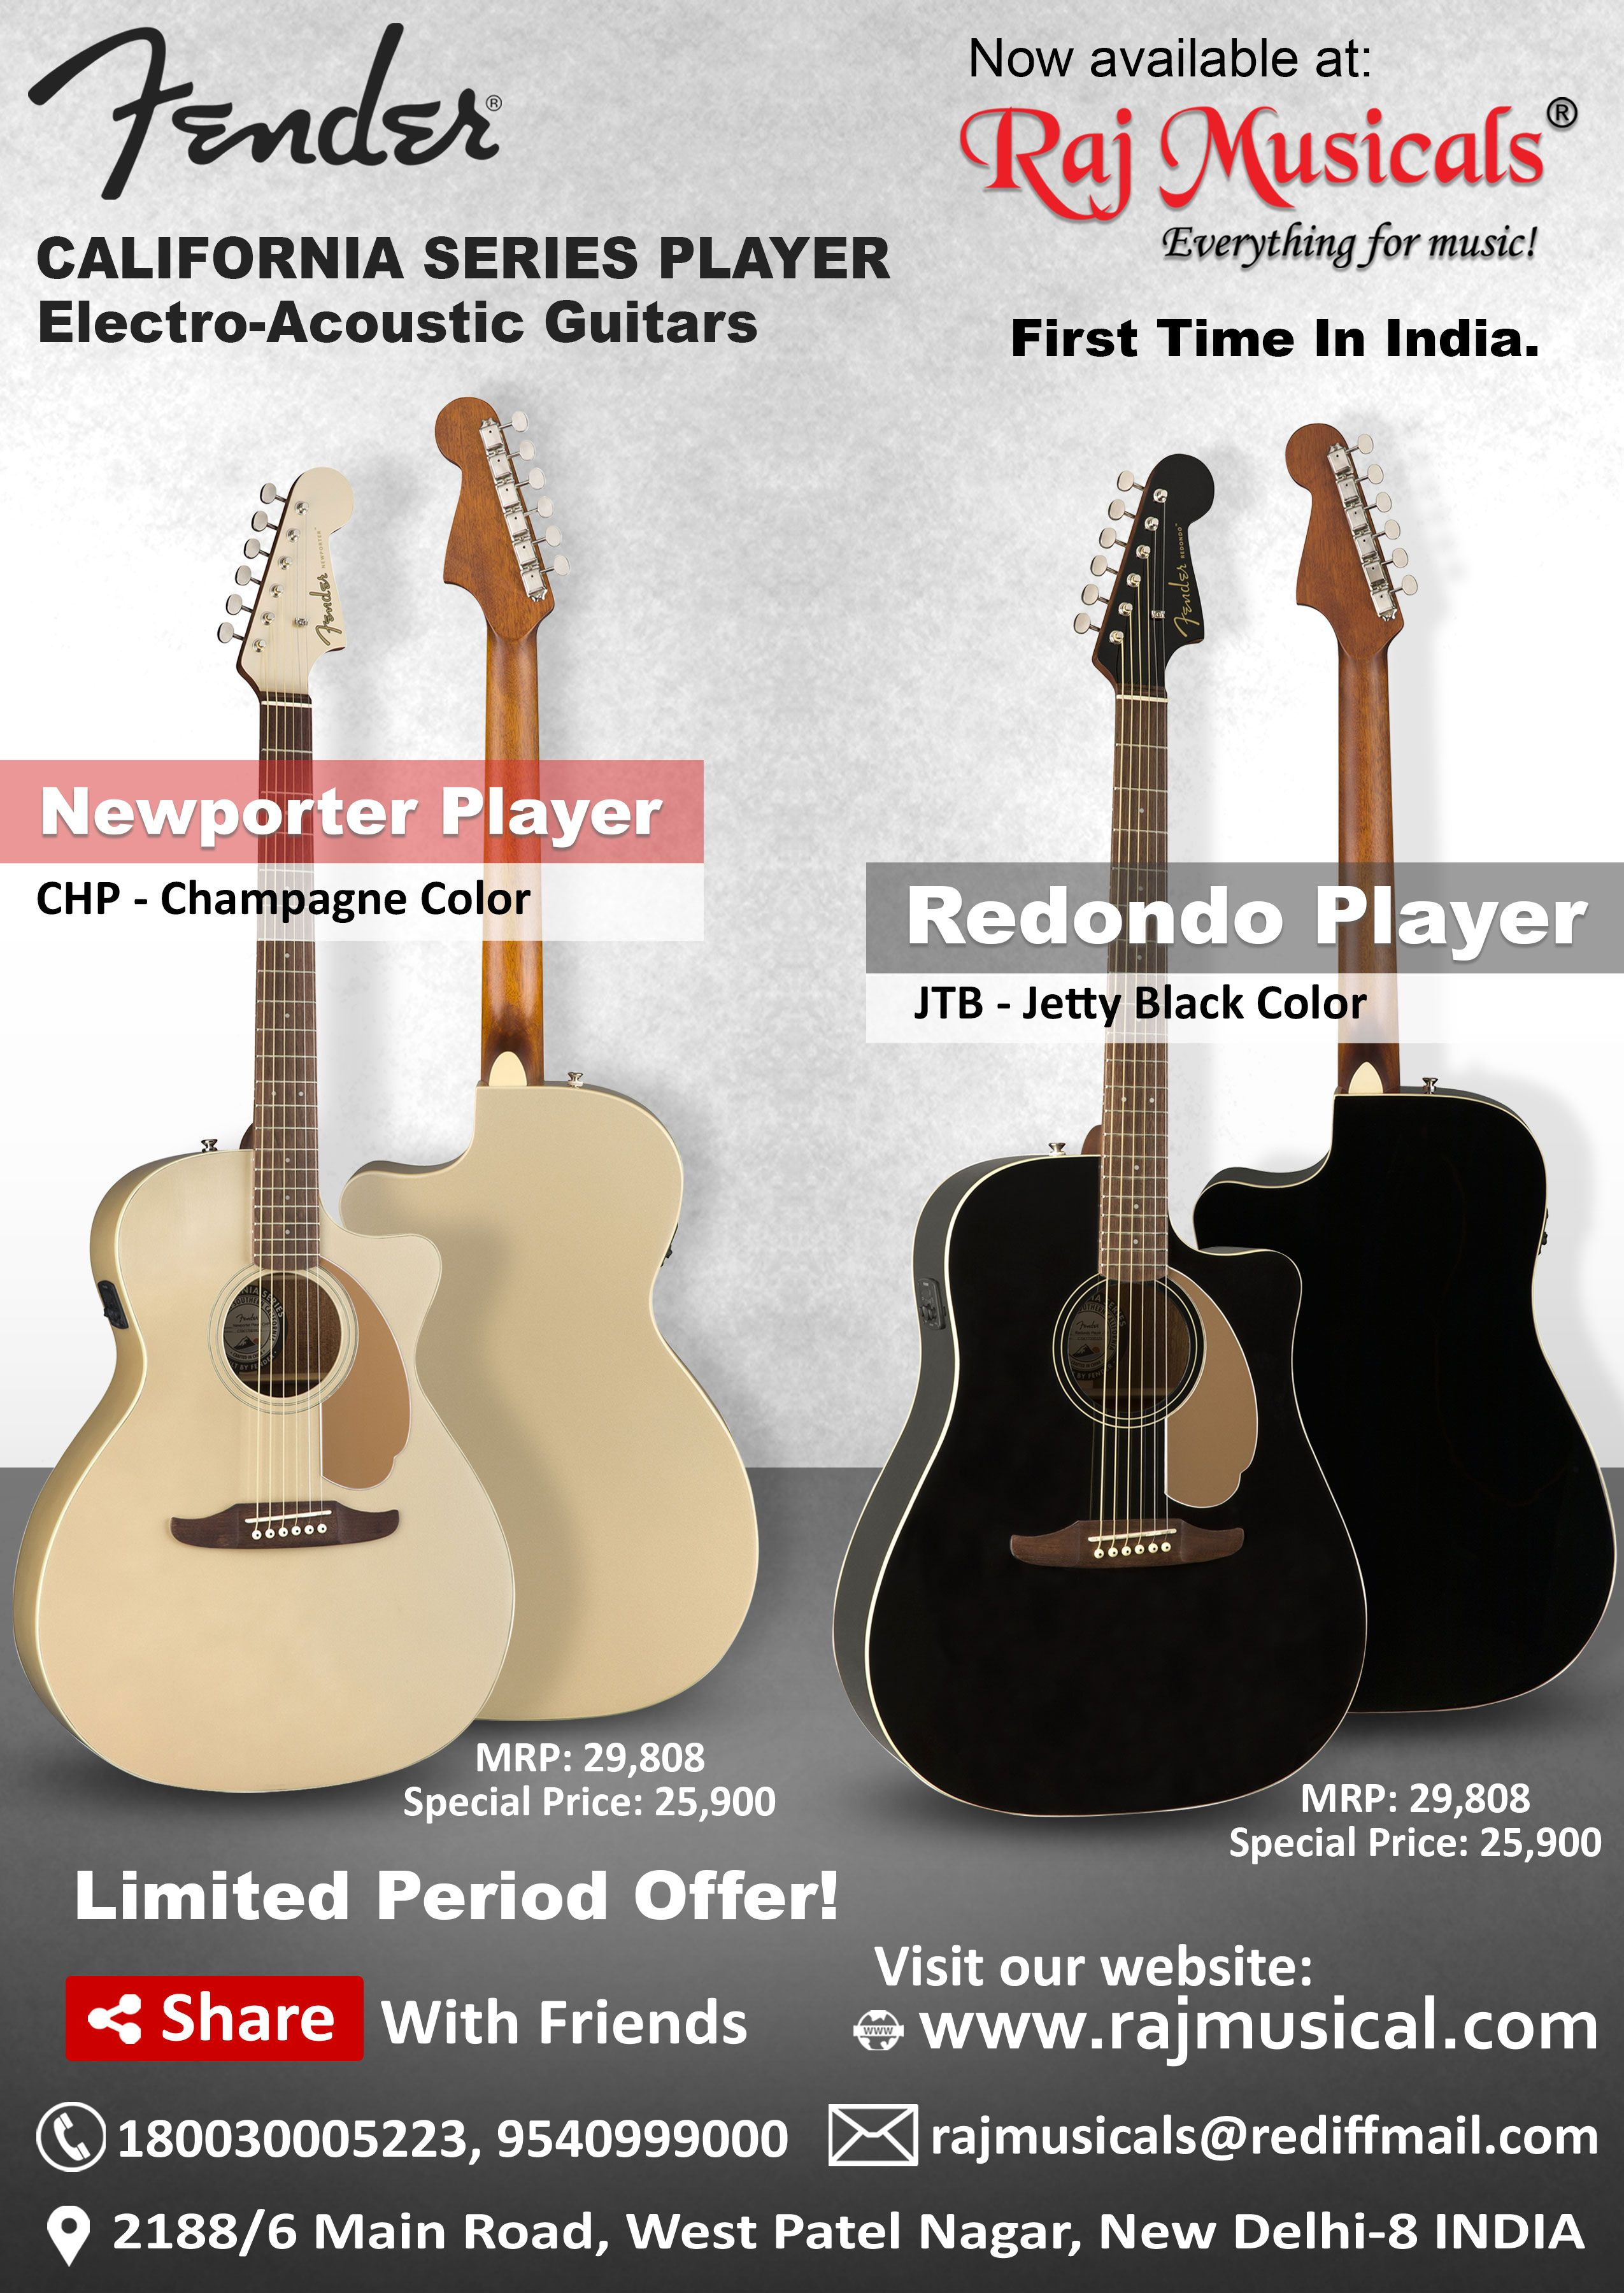 Fender Newporter Player Chp Electro Acoustic Guitar Electro Acoustic Guitar Guitar Acoustic Guitar